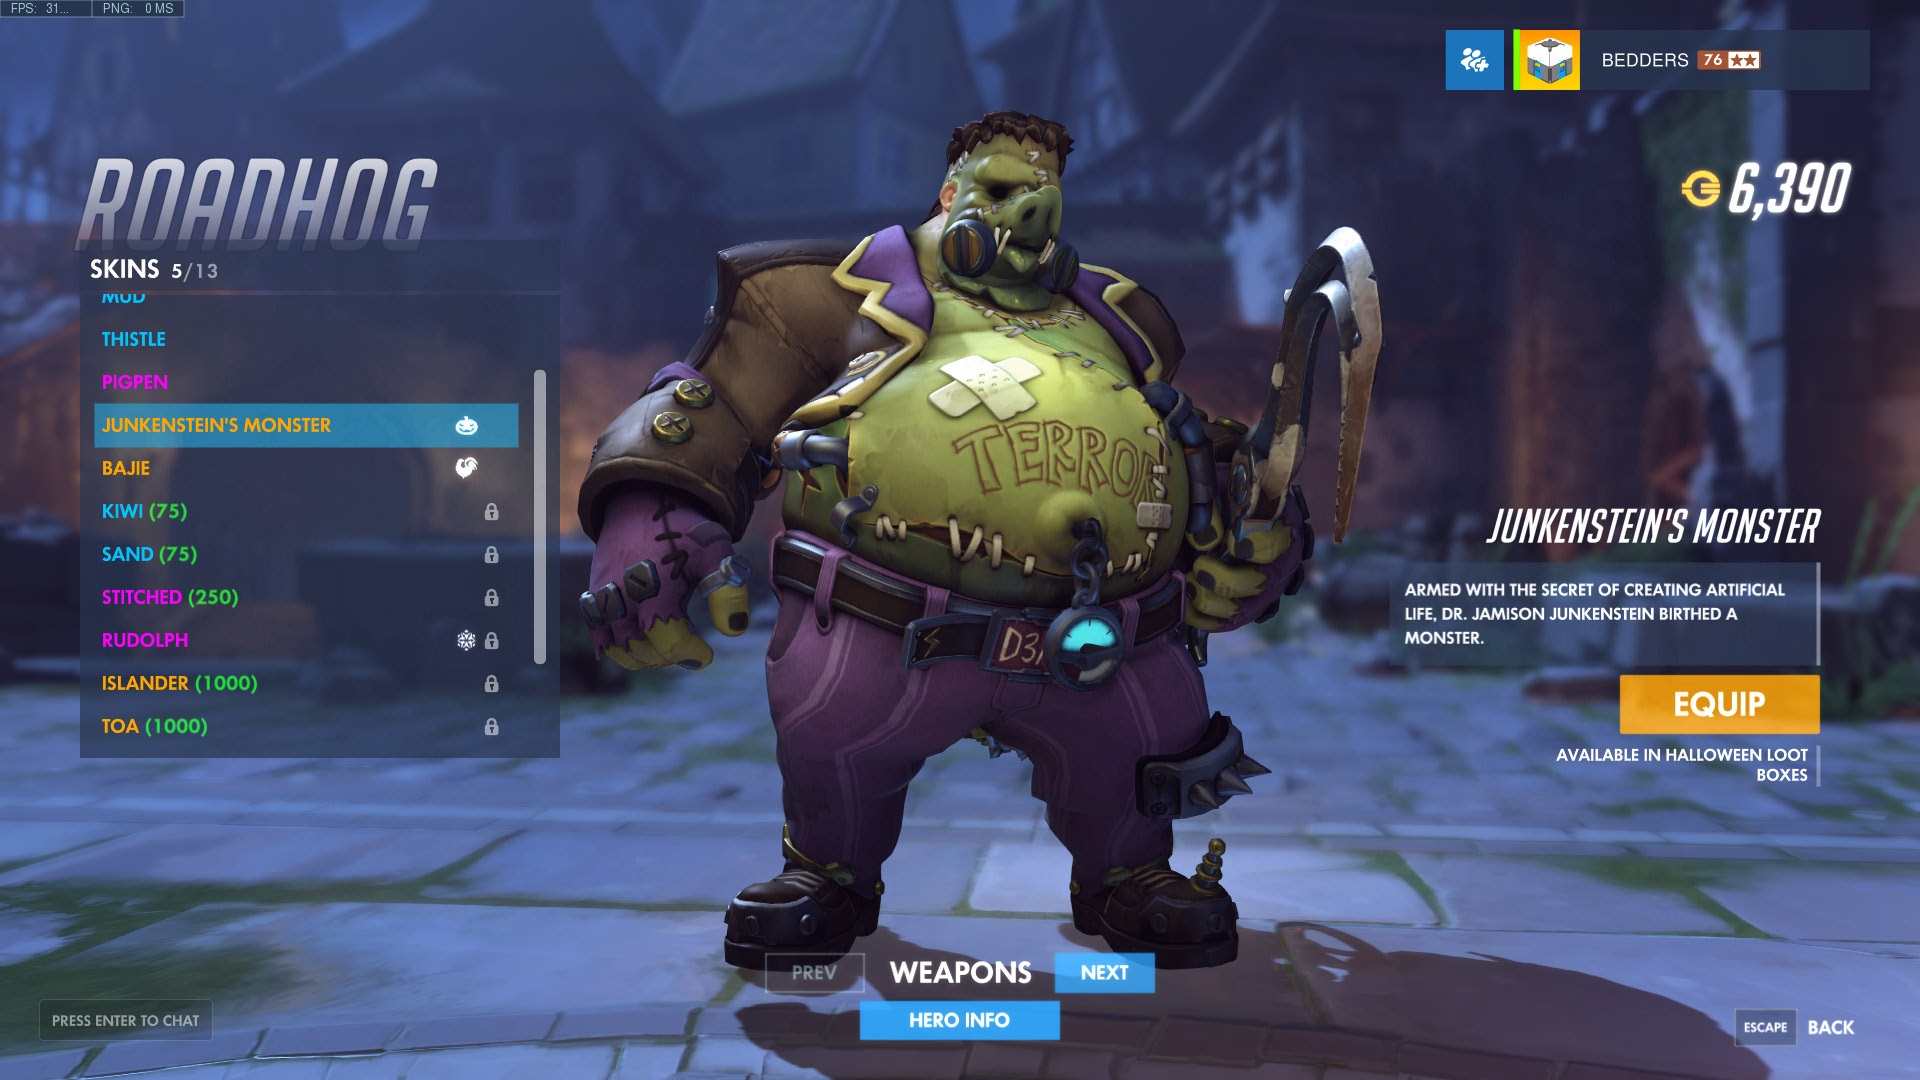 Halloween Terror 2017 Skins All The Legendary Skins In One Place Overwatch Metabomb